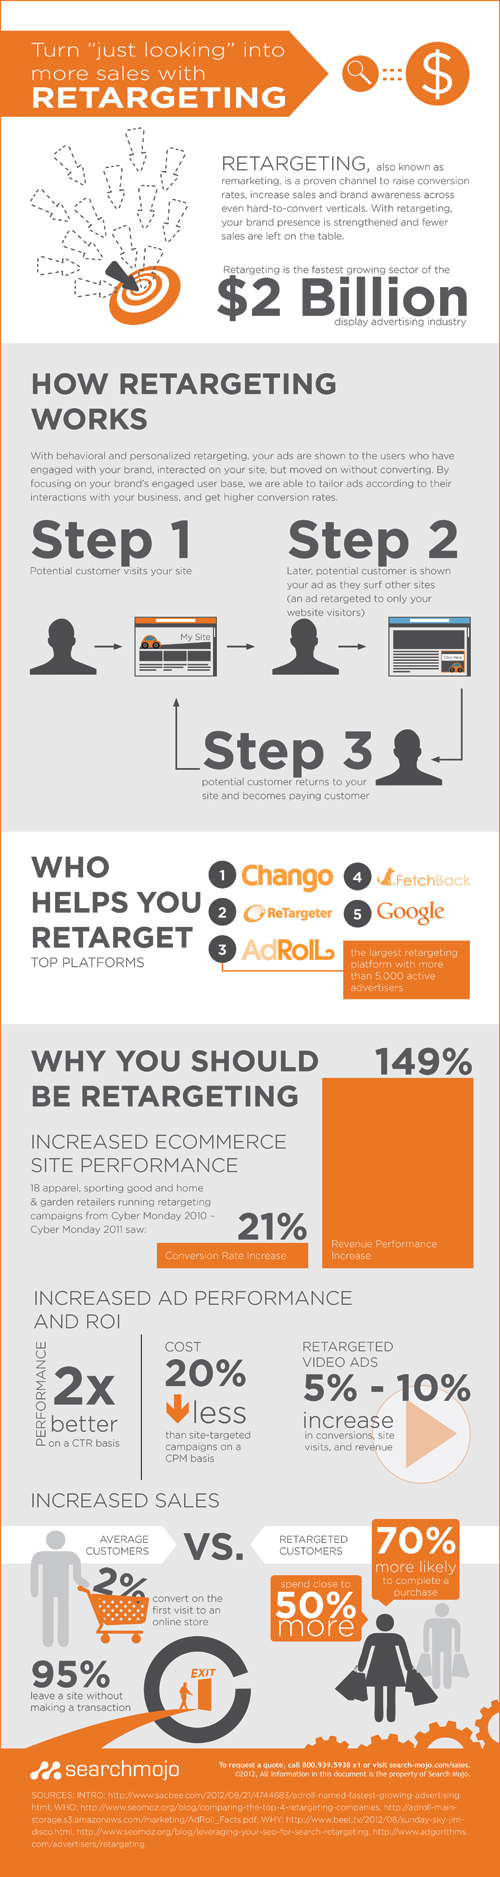 Search-Mojo_Retargeting_Infographic